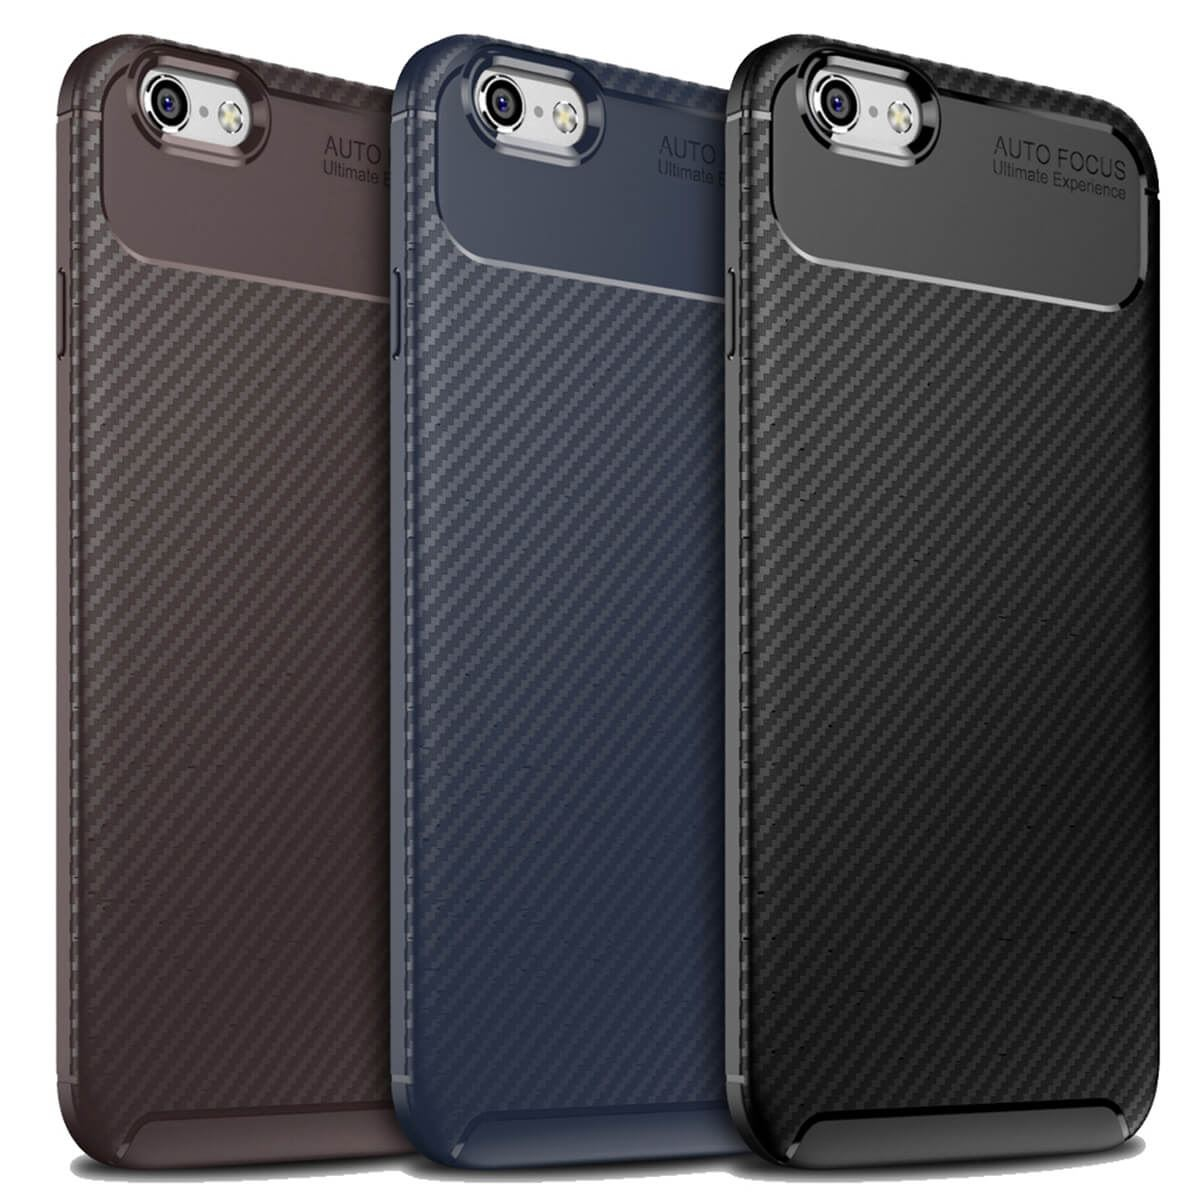 Carbon-Fibre-Soft-Case-For-iPhone-11-X-XR-Max-8-7-6-Plus-Slim-TPU-Silicone-Cover thumbnail 3